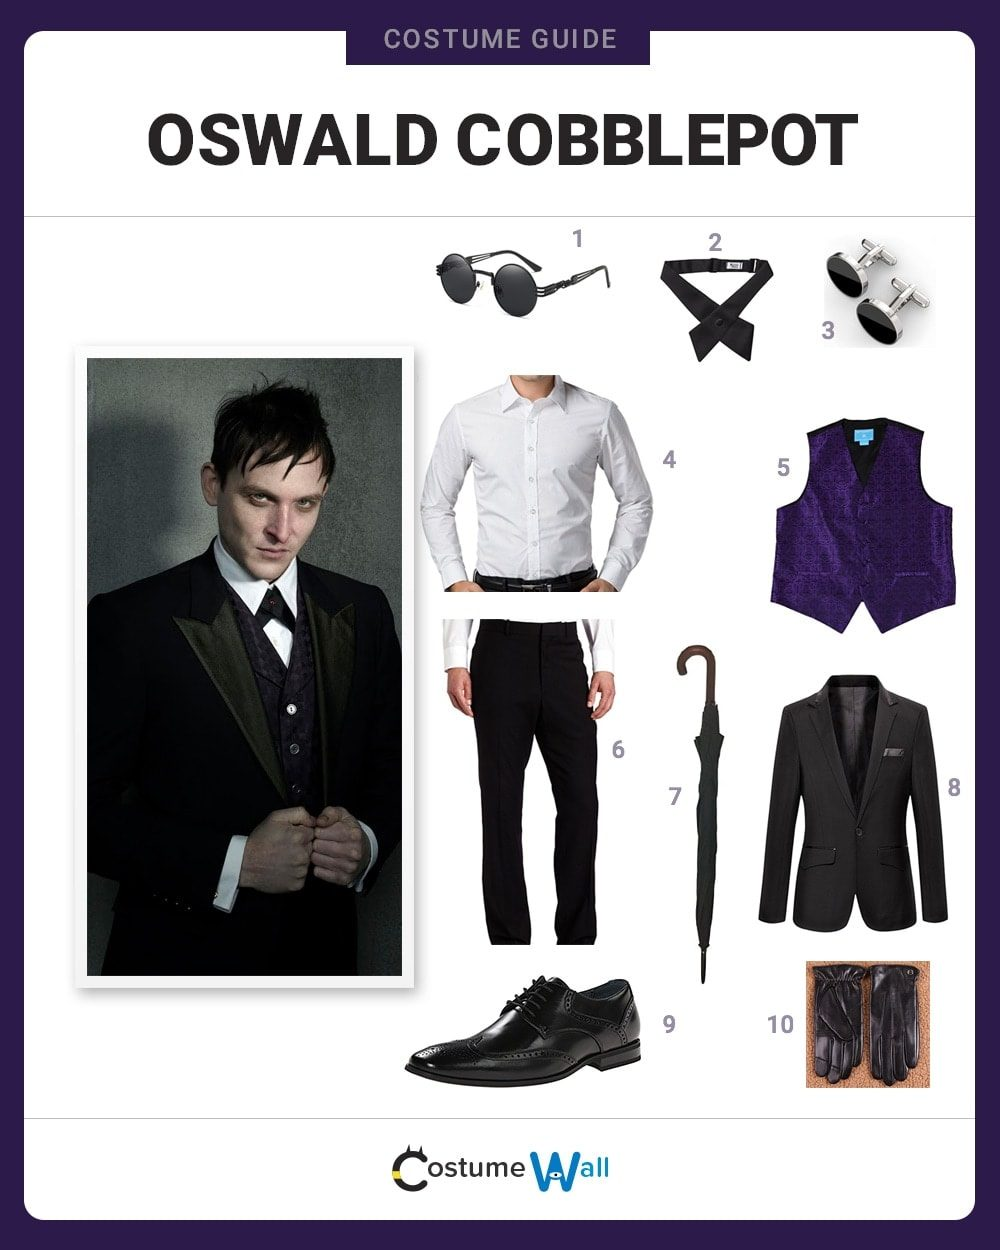 Oswald Cobblepot Costume Guide